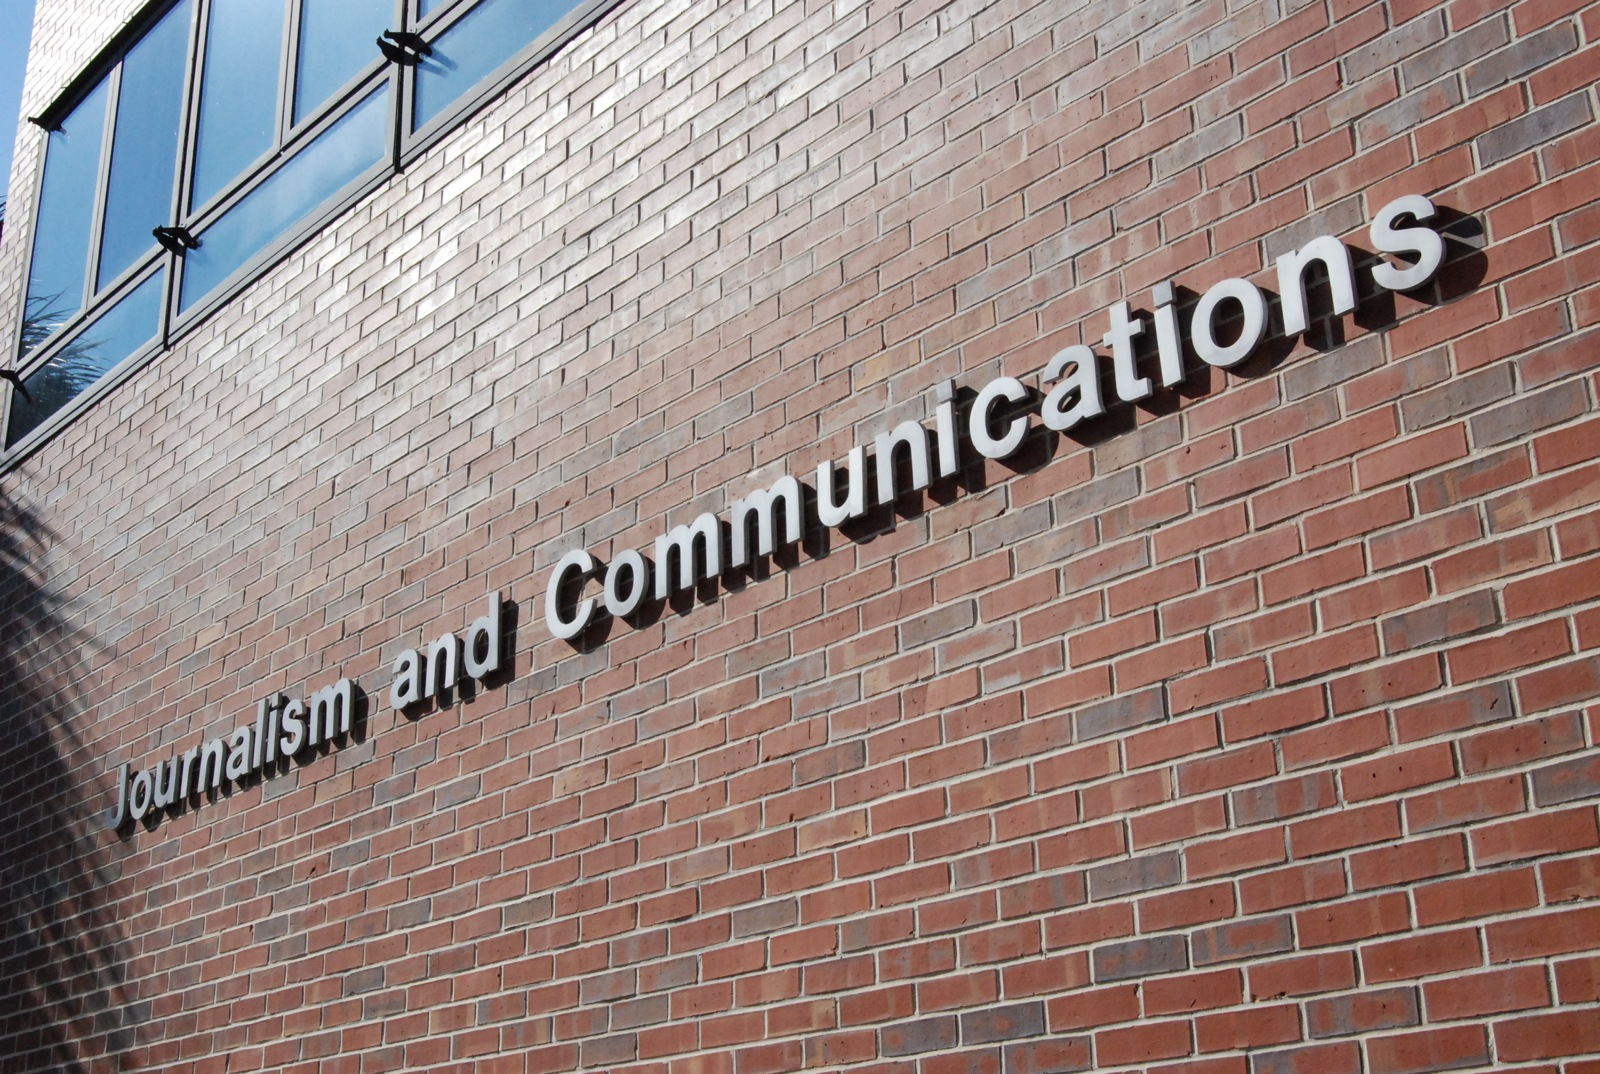 of journalism and communications college of journalism and communications